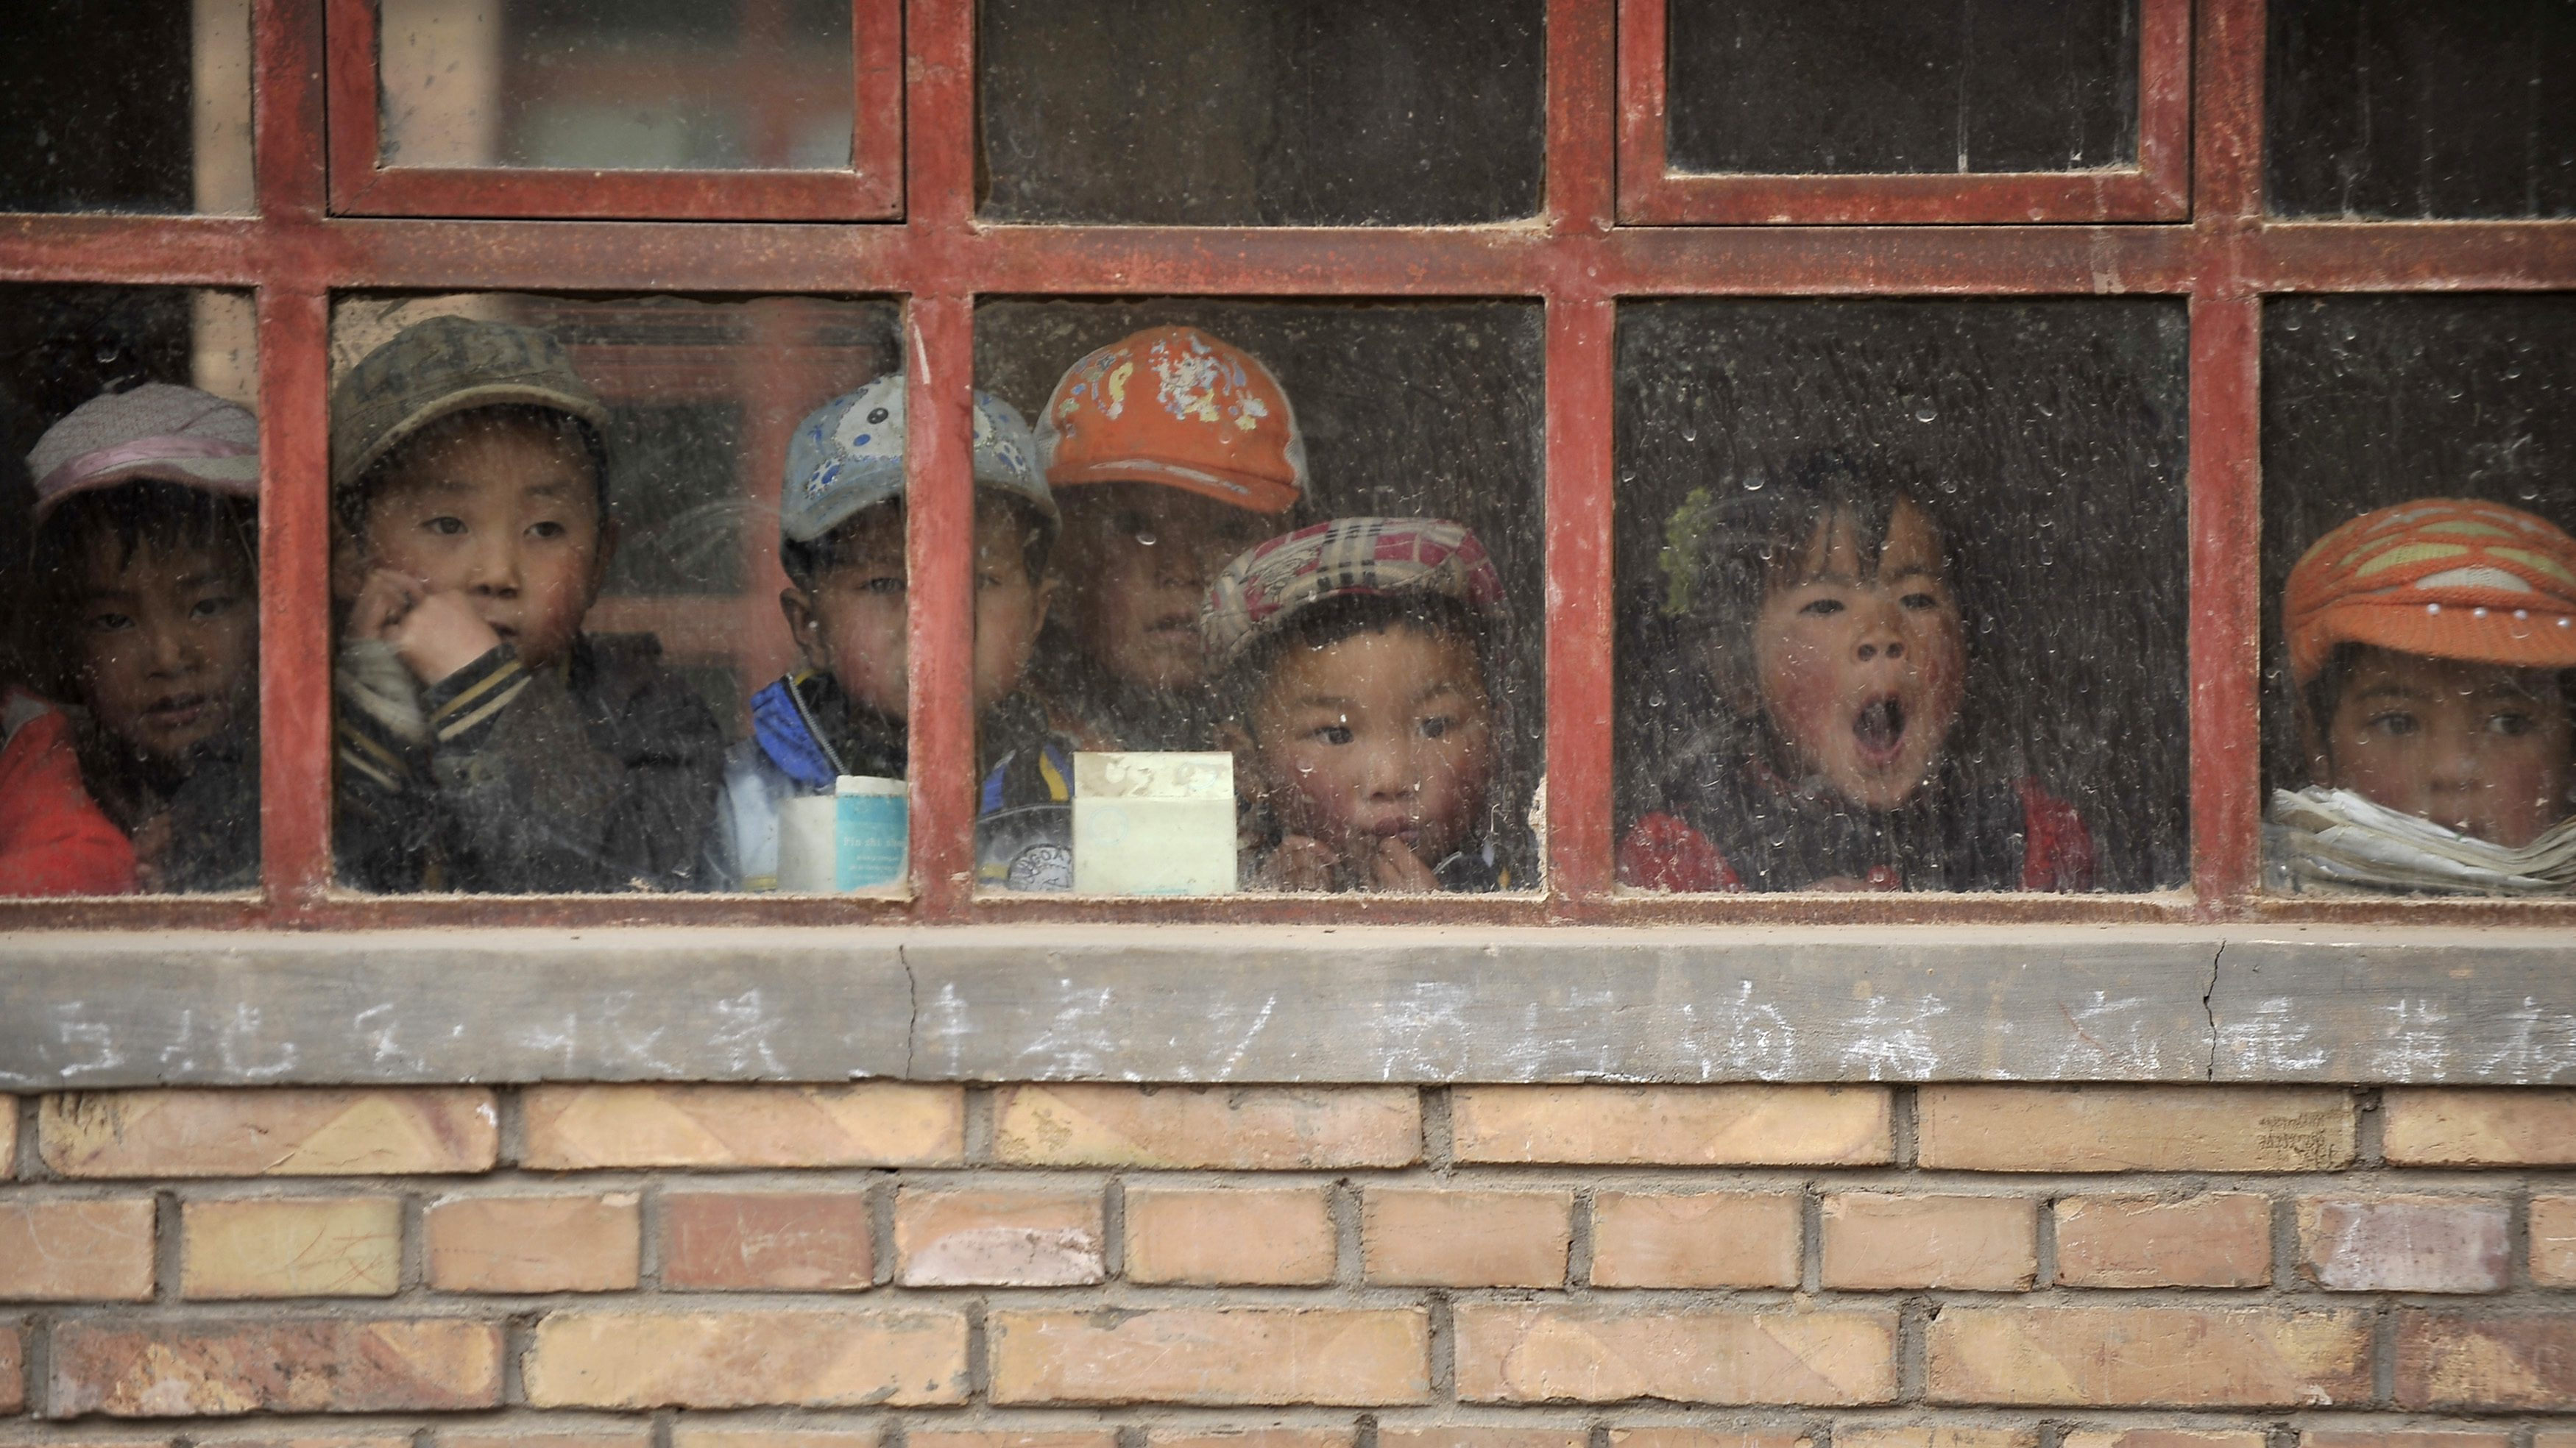 Children look out from a window of their classroom at a rural primary school in Min county, Gansu province June 1, 2011. The school, consisting of five teachers and 102 students, is located on a mountain measuring more than 2,000 meters (6,562 ft) high. REUTERS/Stringer (CHINA - Tags: EDUCATION SOCIETY) - RTR2N5JT